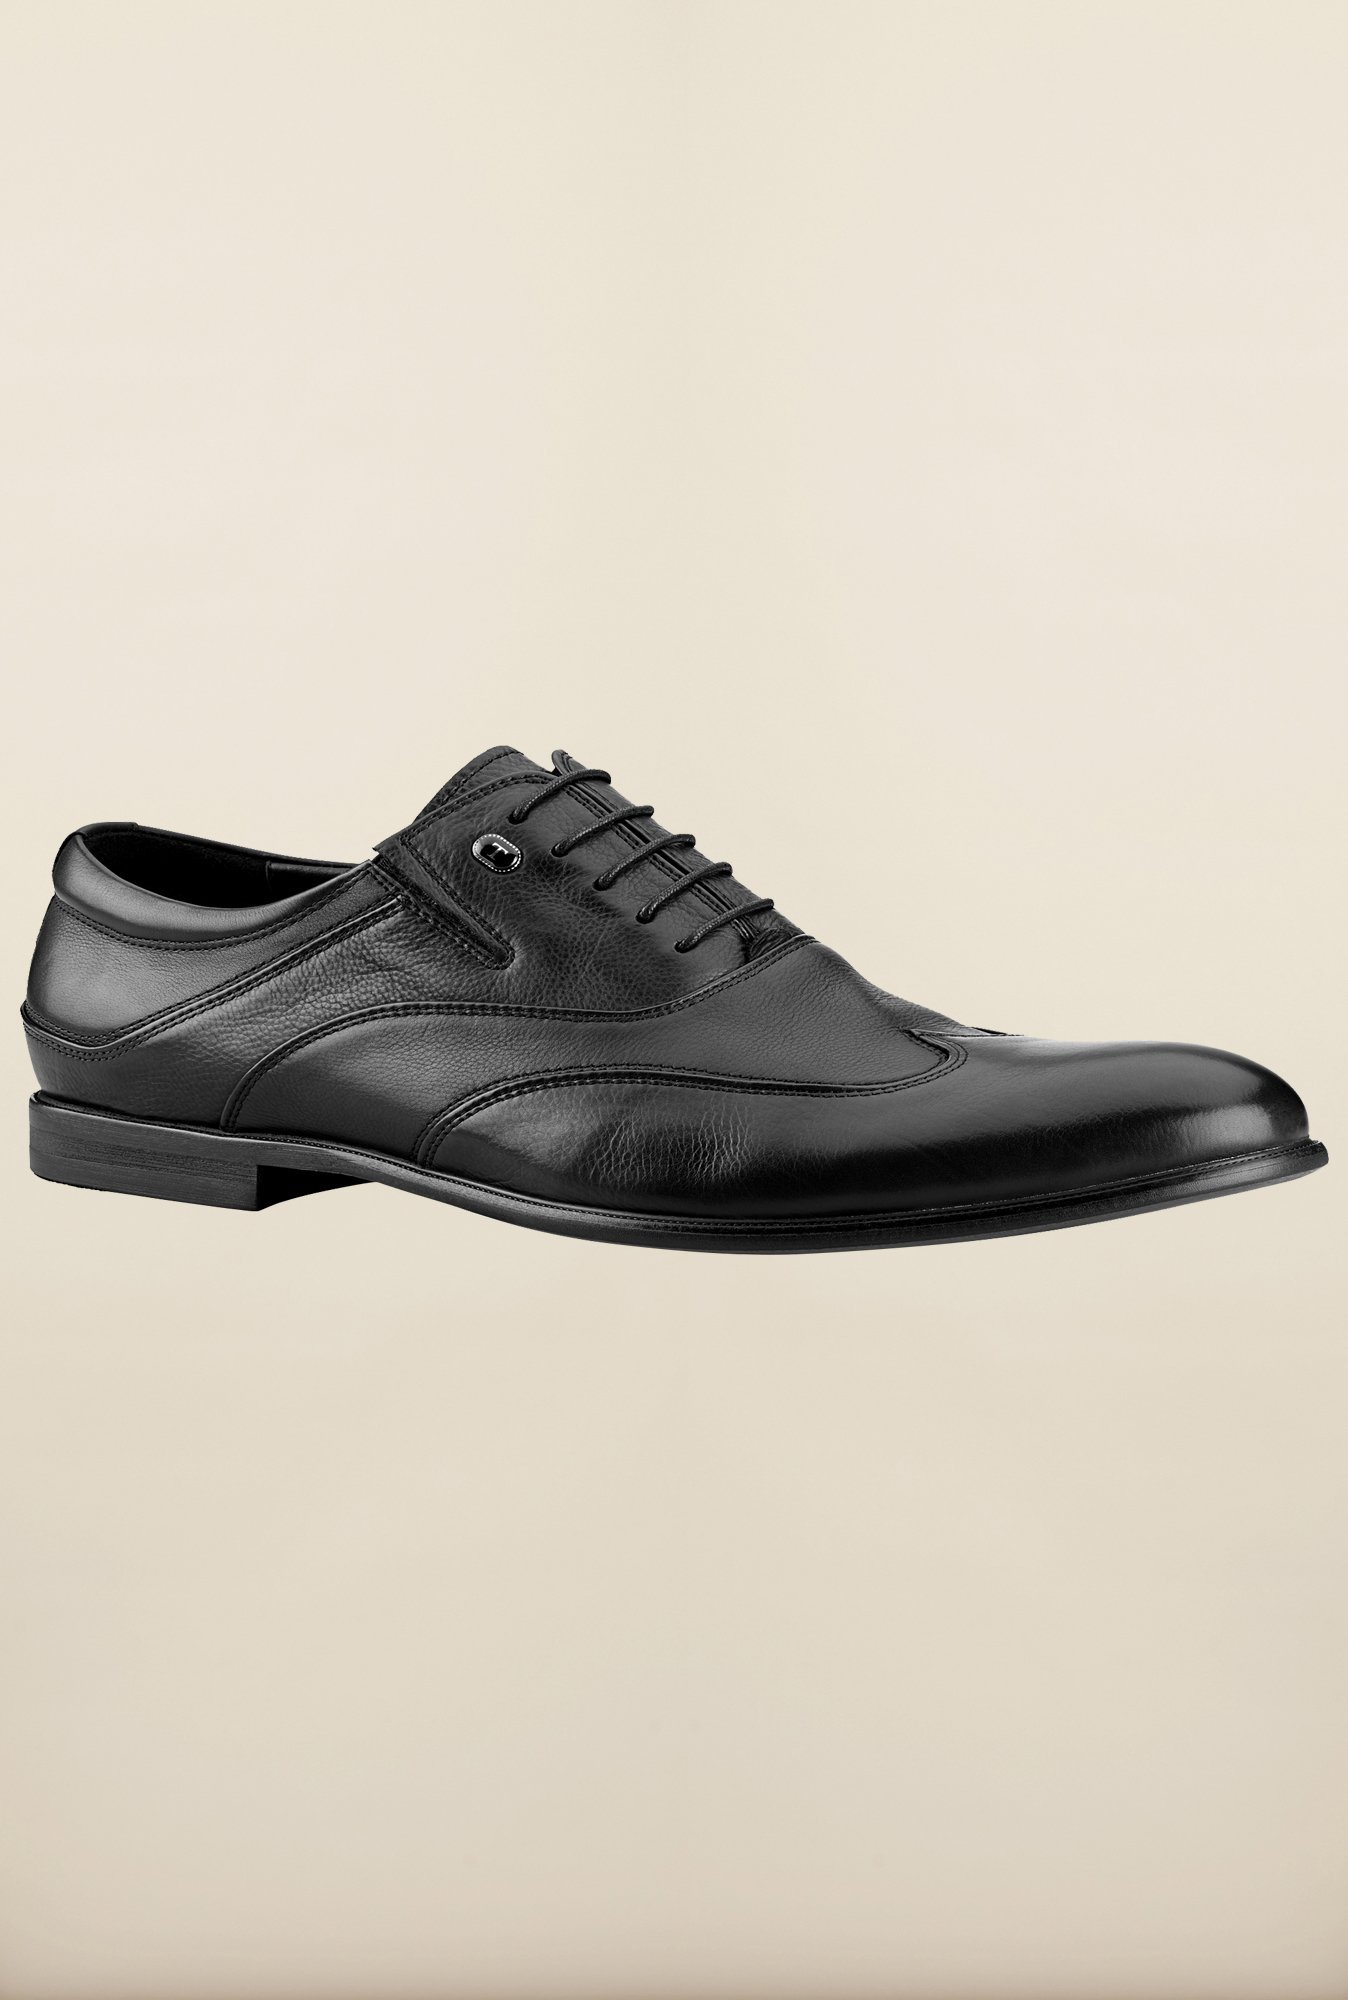 Tresmode Begano Black Oxford Shoes